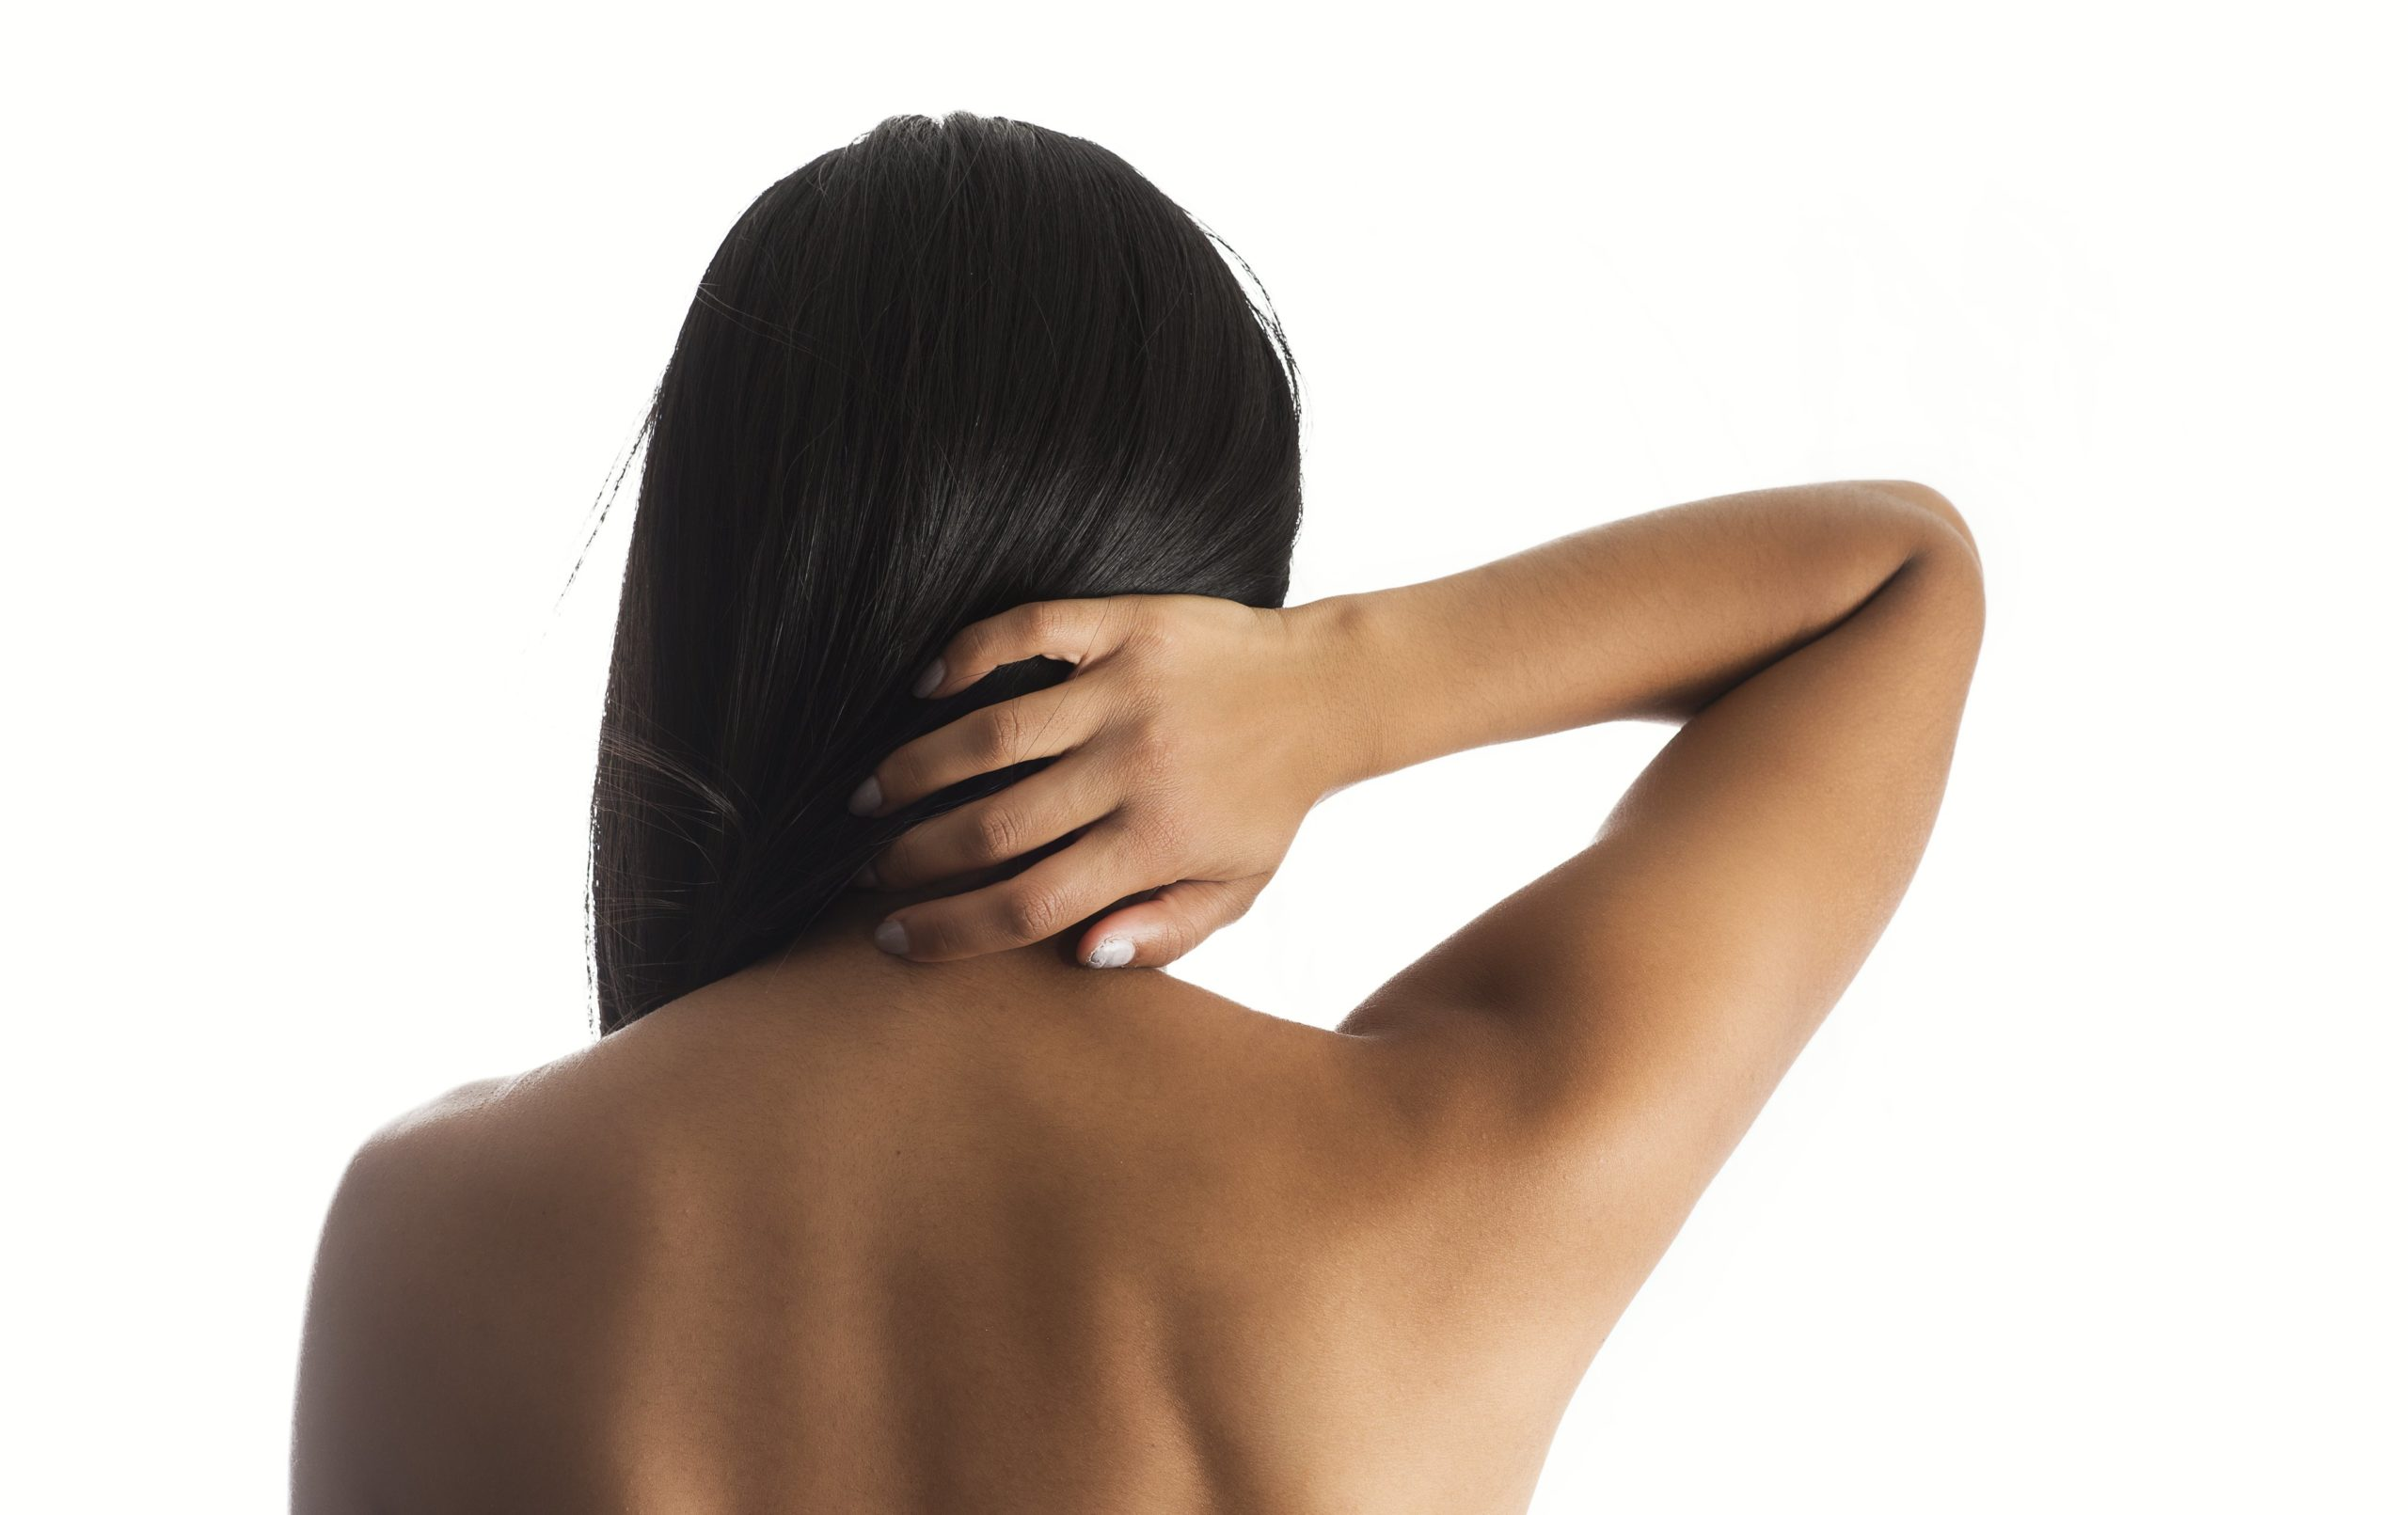 woman-hand-on-back-neck